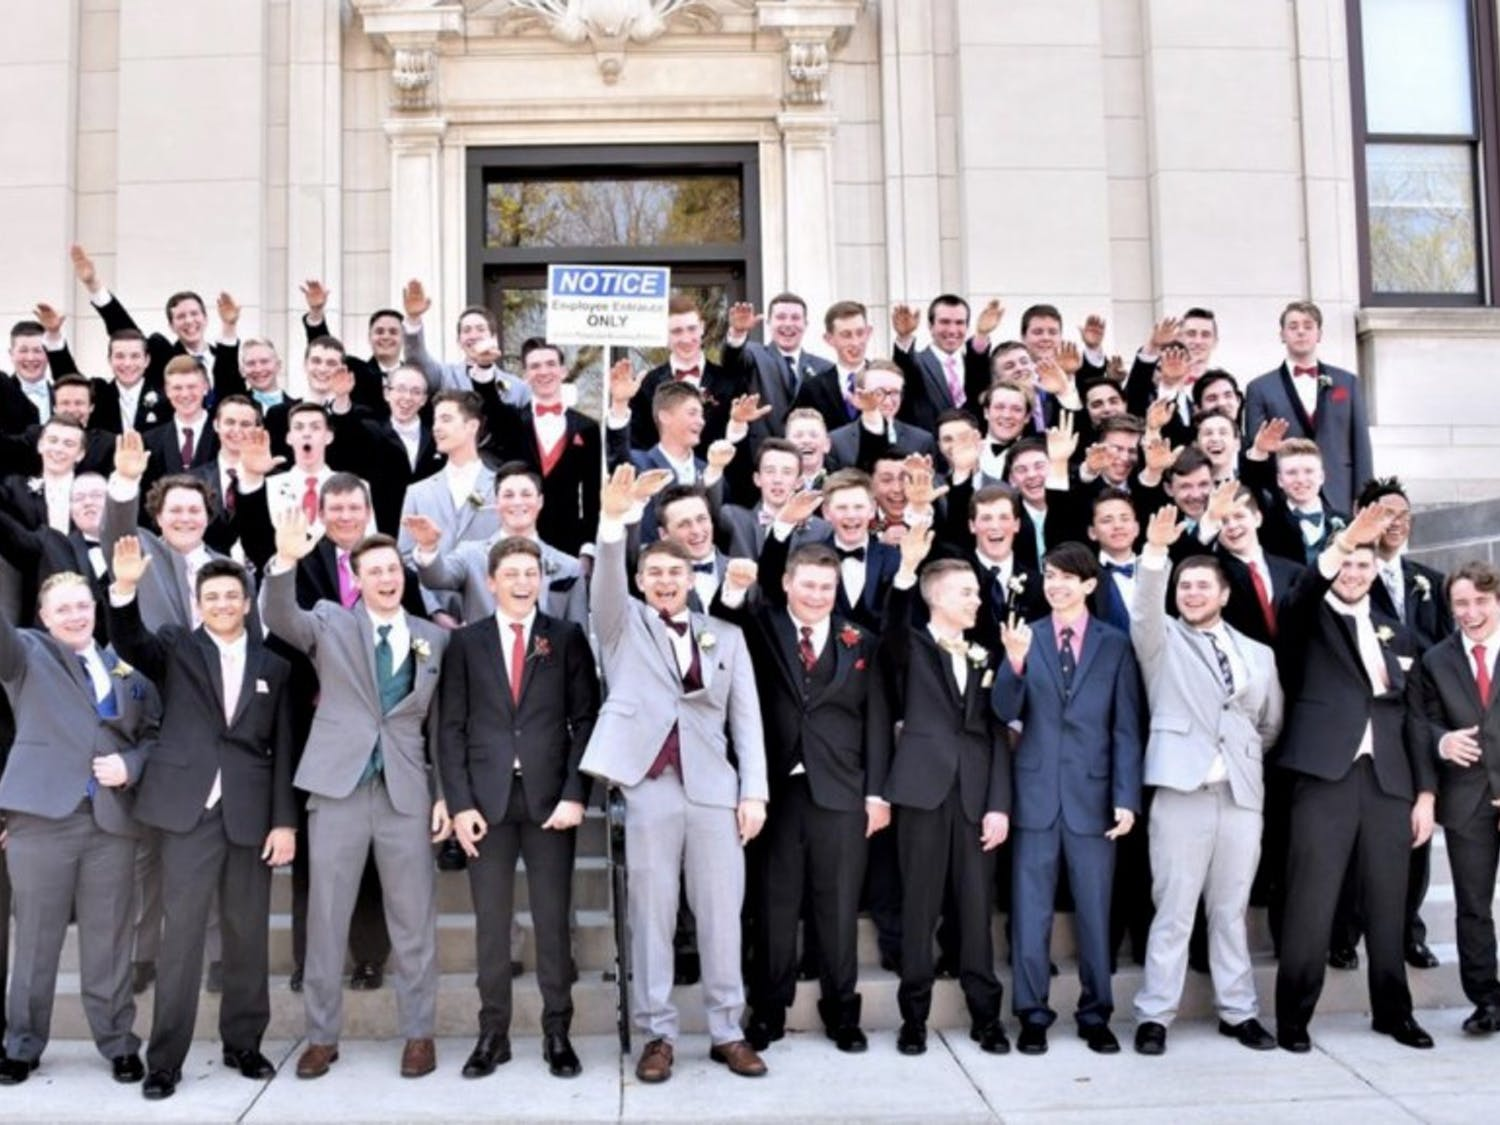 Baraboo schools and police are still investigating a controversial photo of high school students taken at prom last semester, as well as threats that have been made against members of the community.